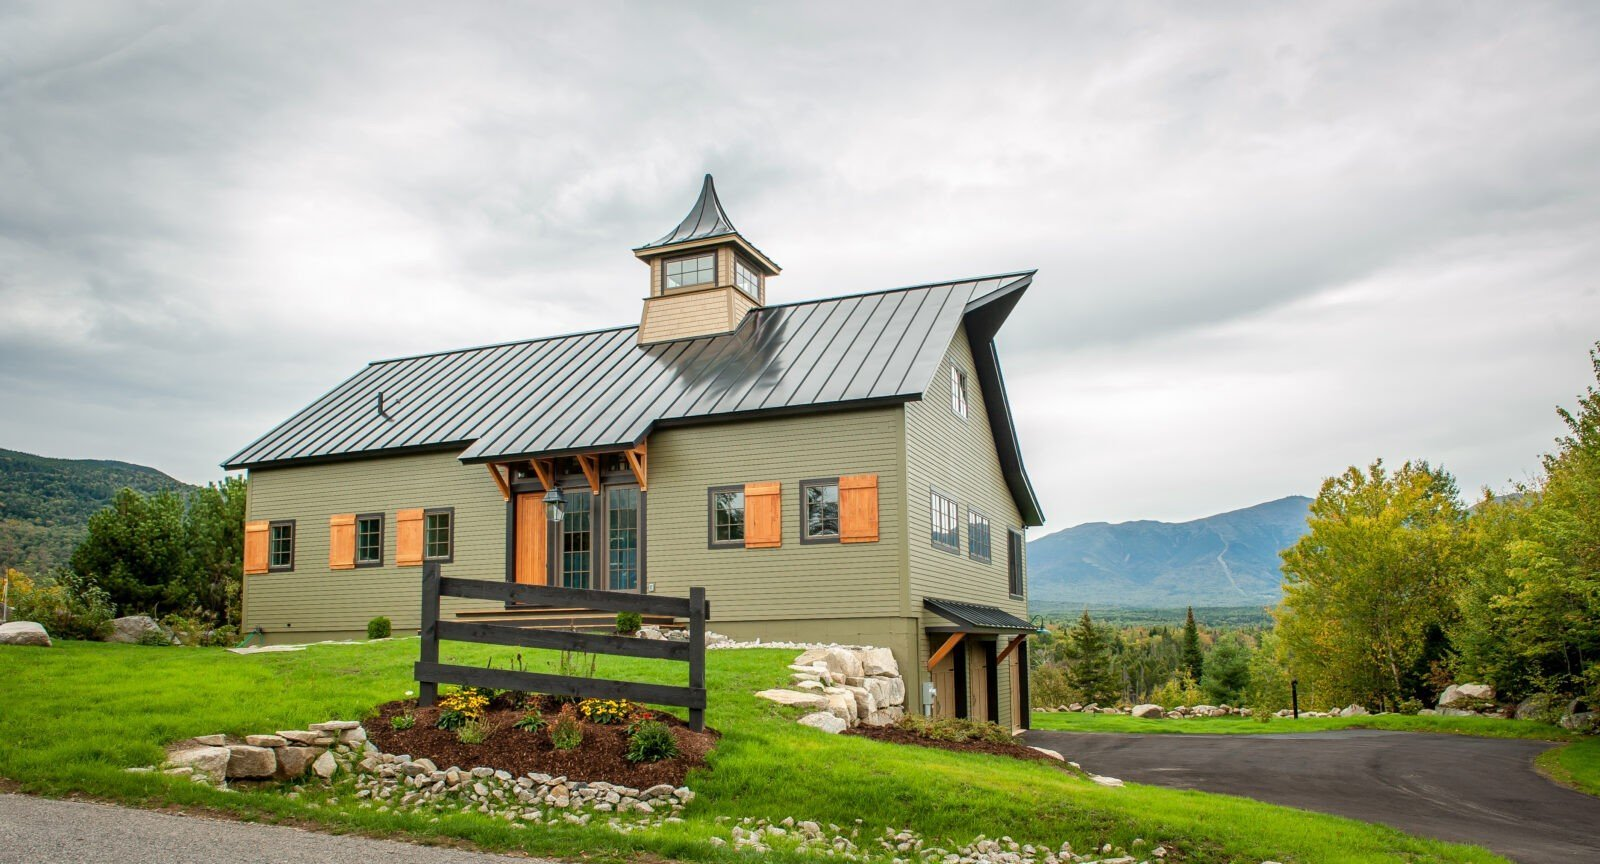 Top notch barn home plans from the ybh design team Barn homes plans